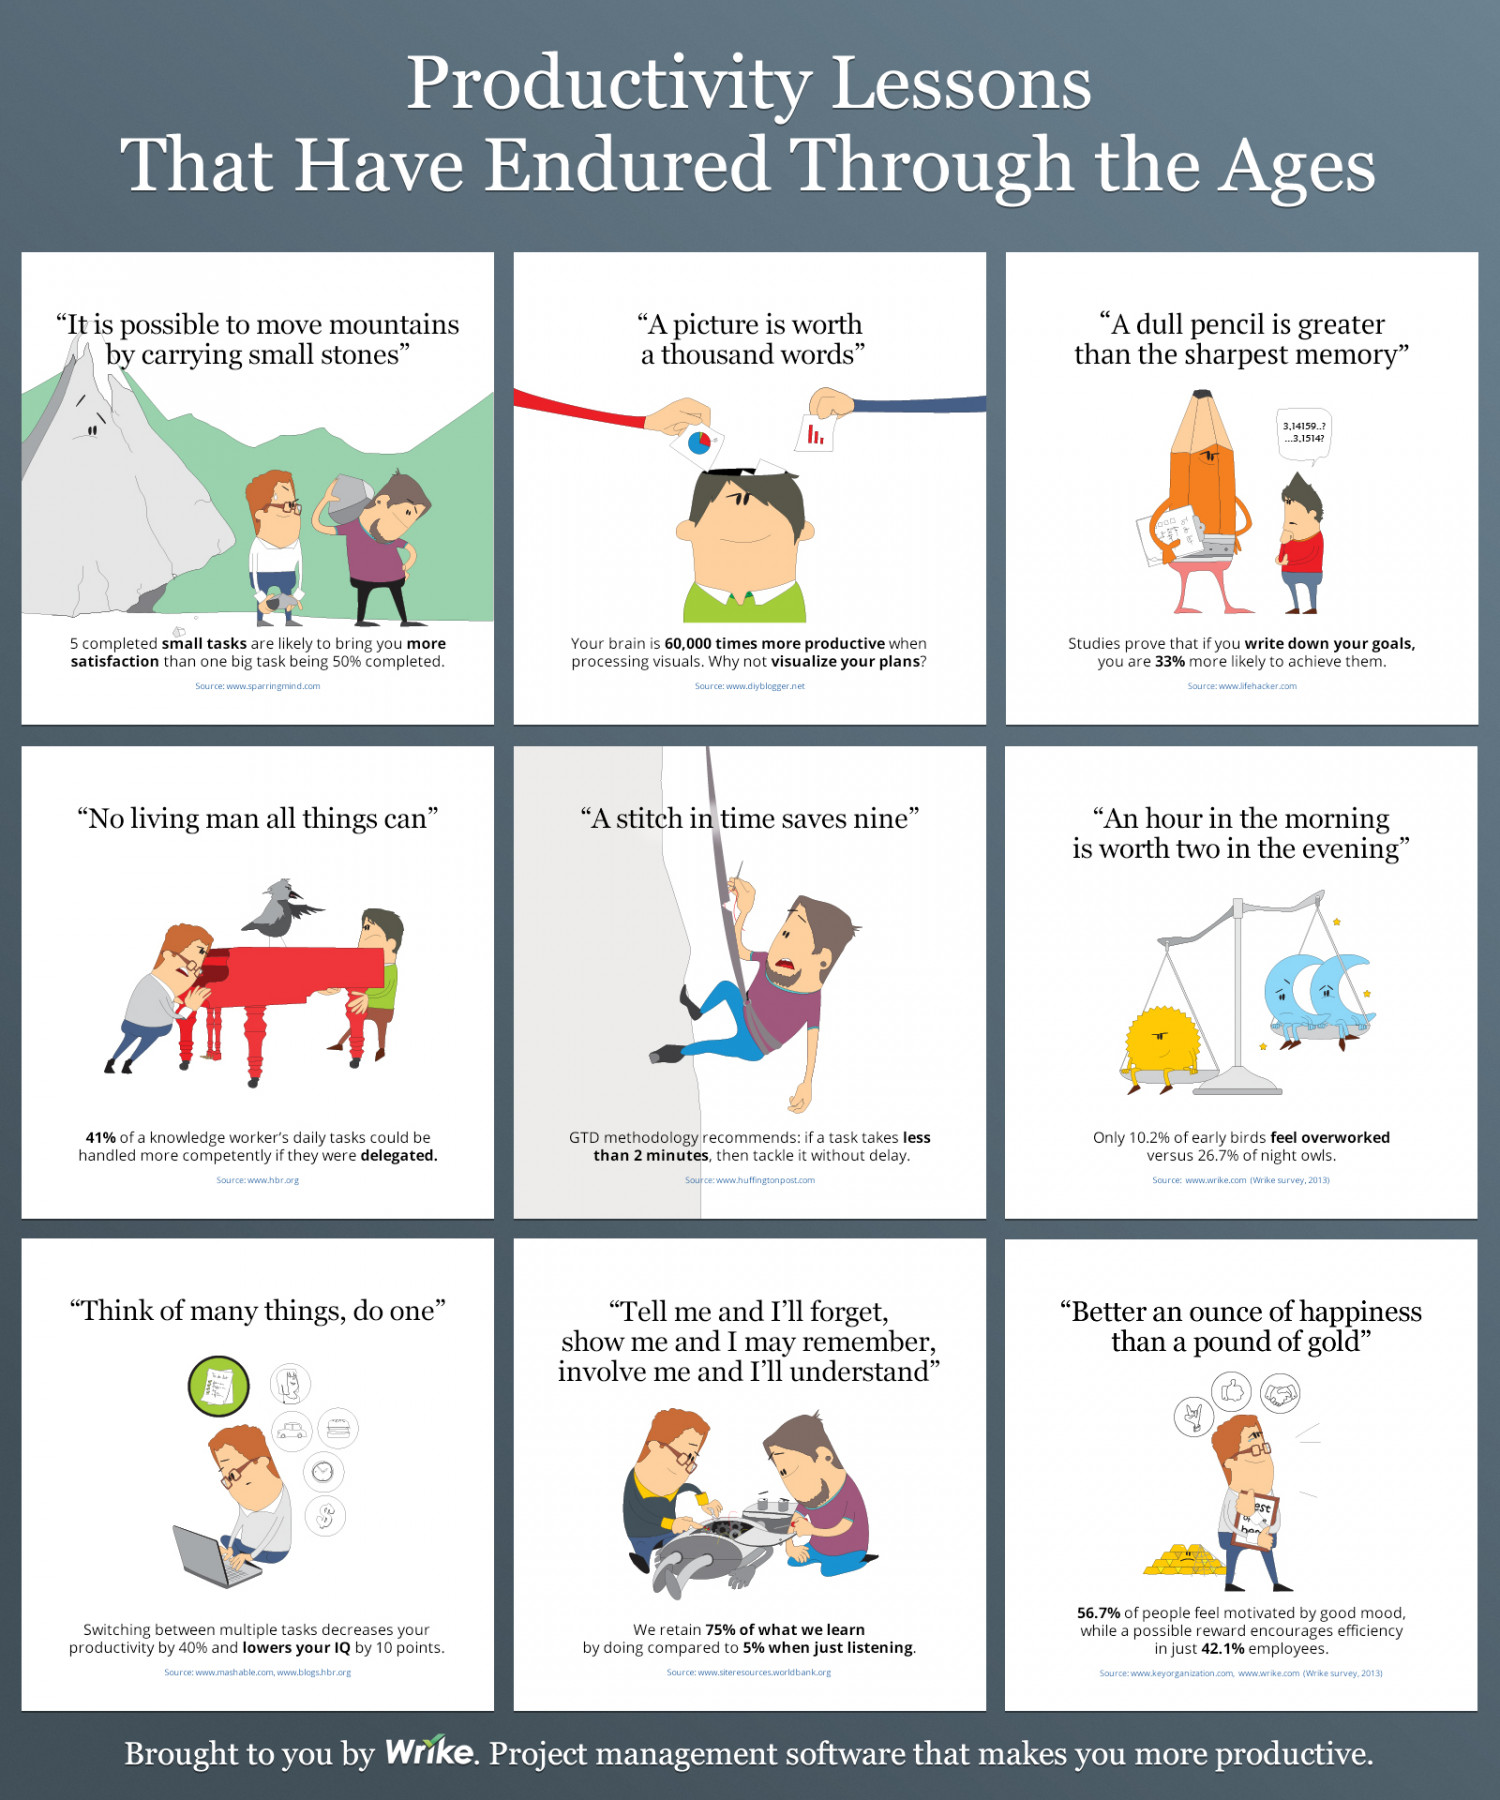 Productivity Lessons That Have Endured Through the Ages Infographic